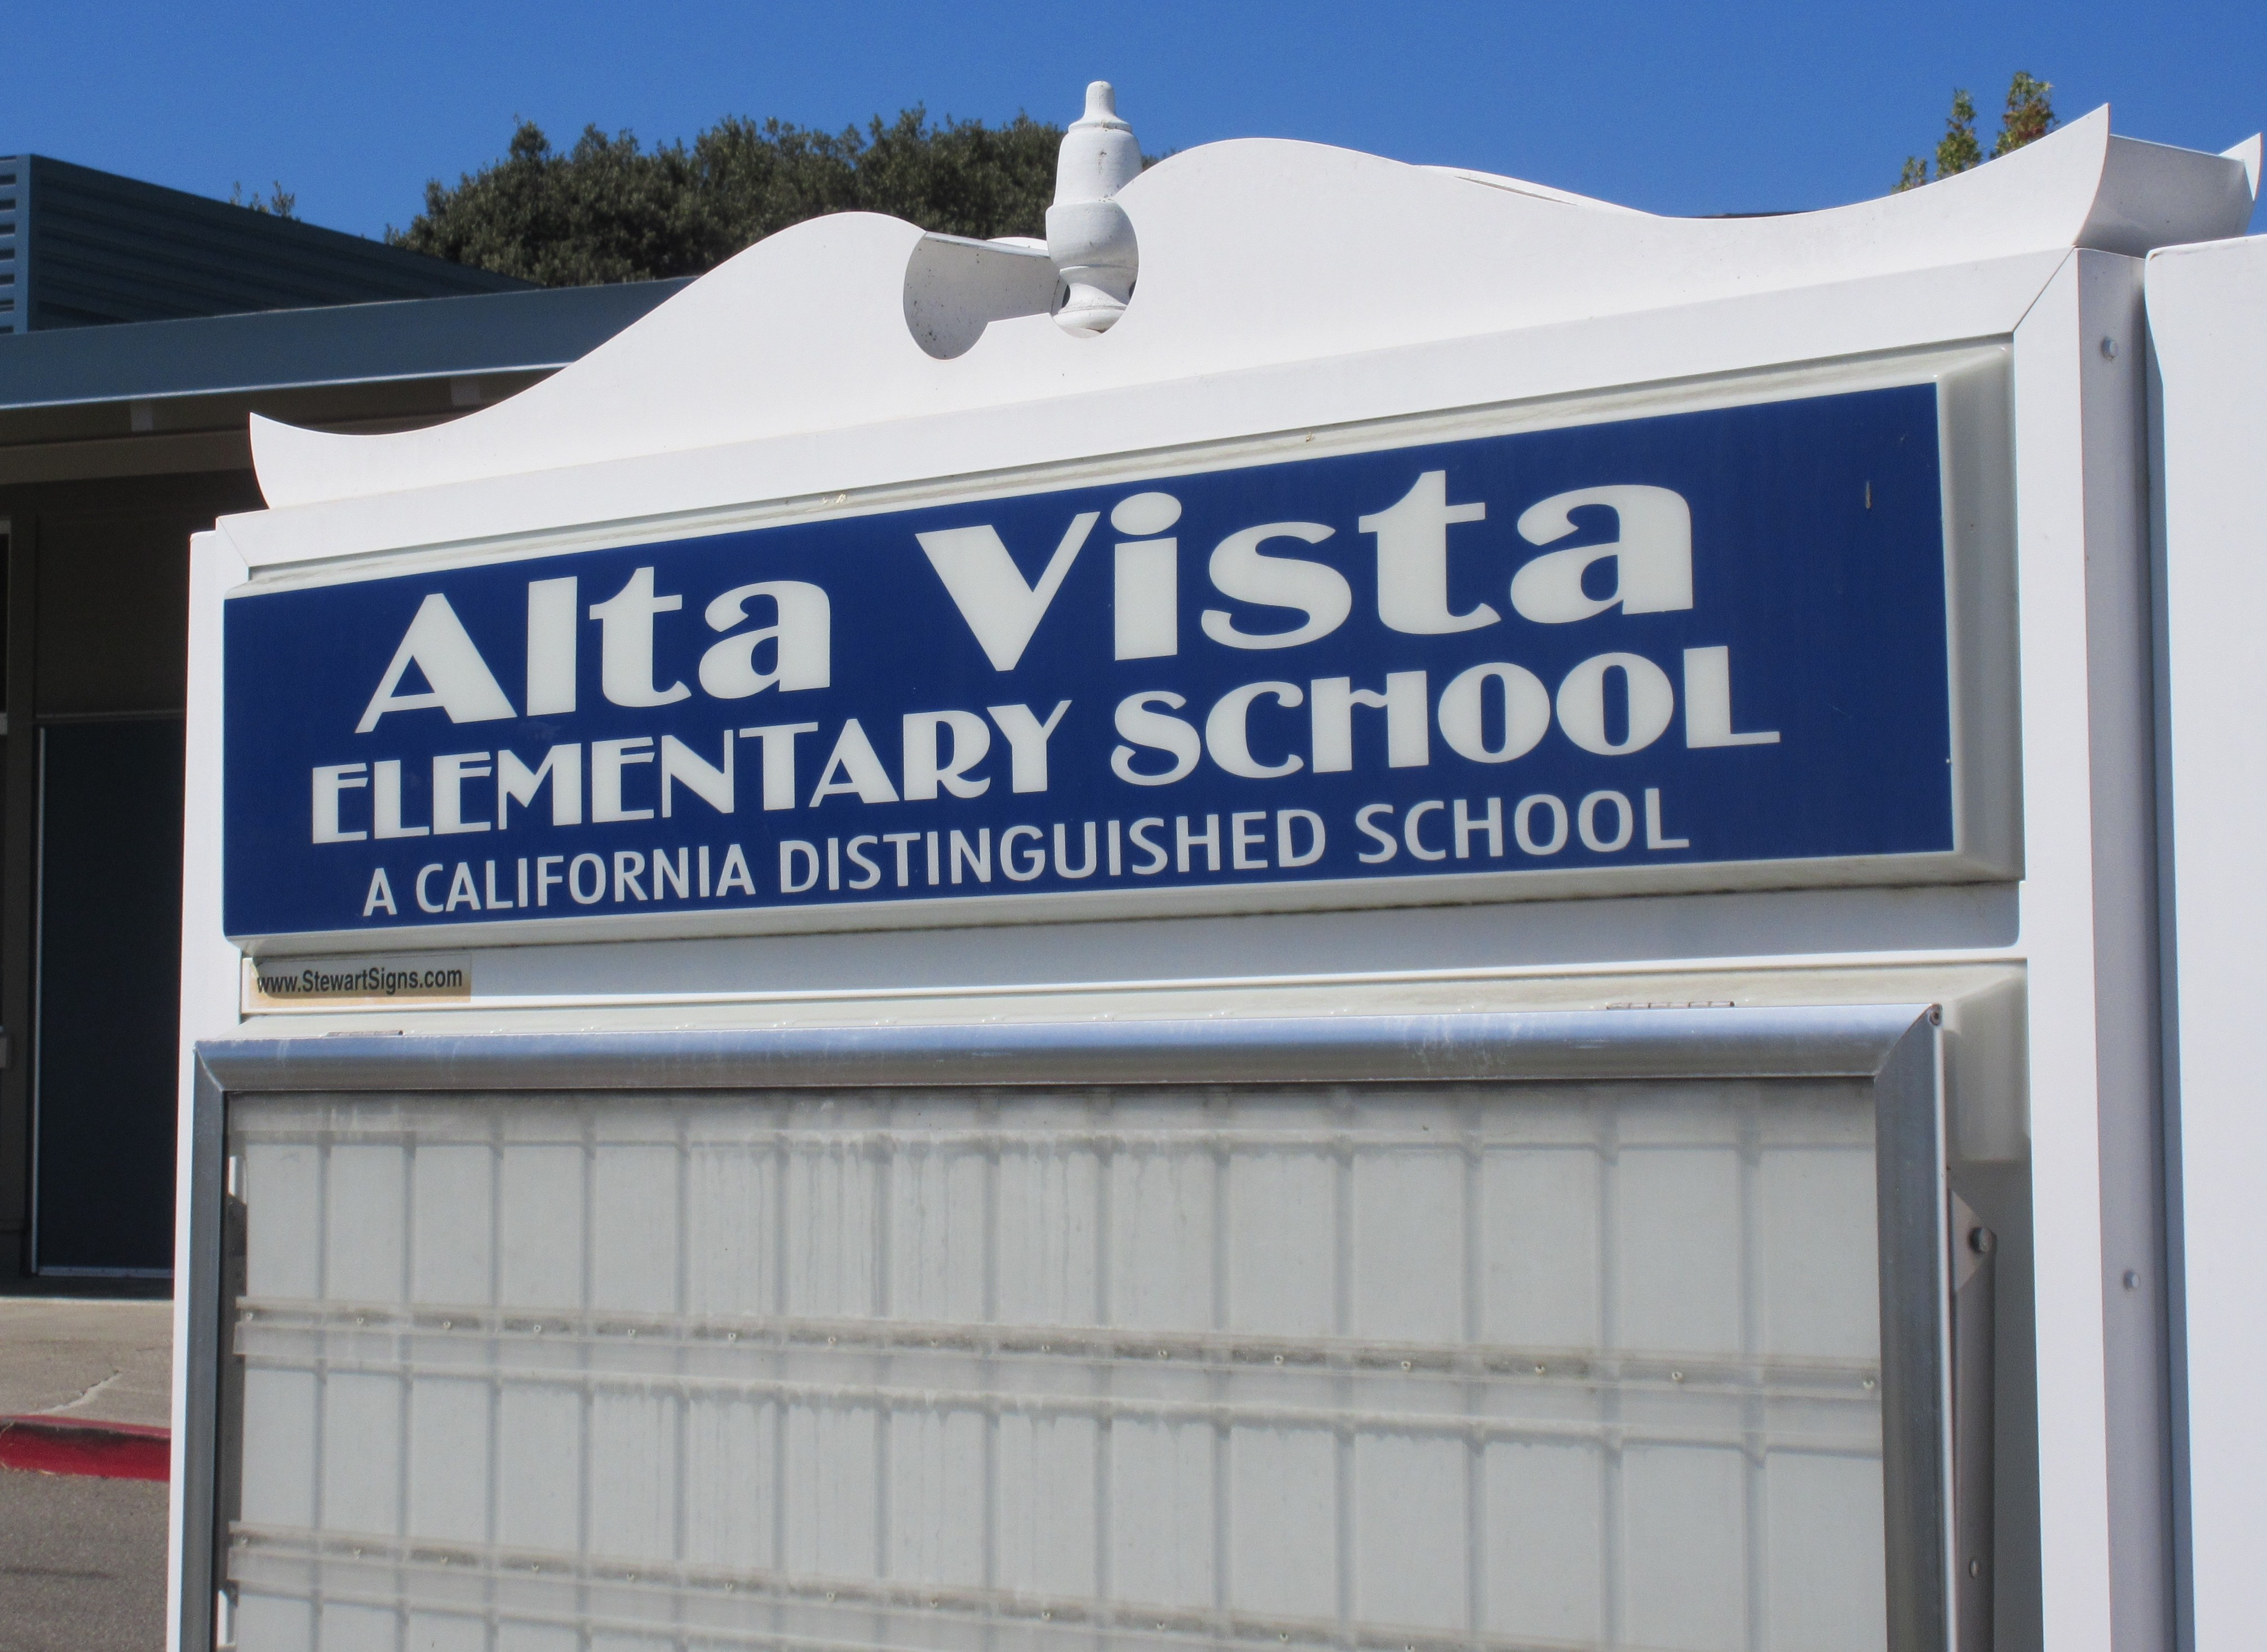 Welcome to Alta Vista Elementary School Image